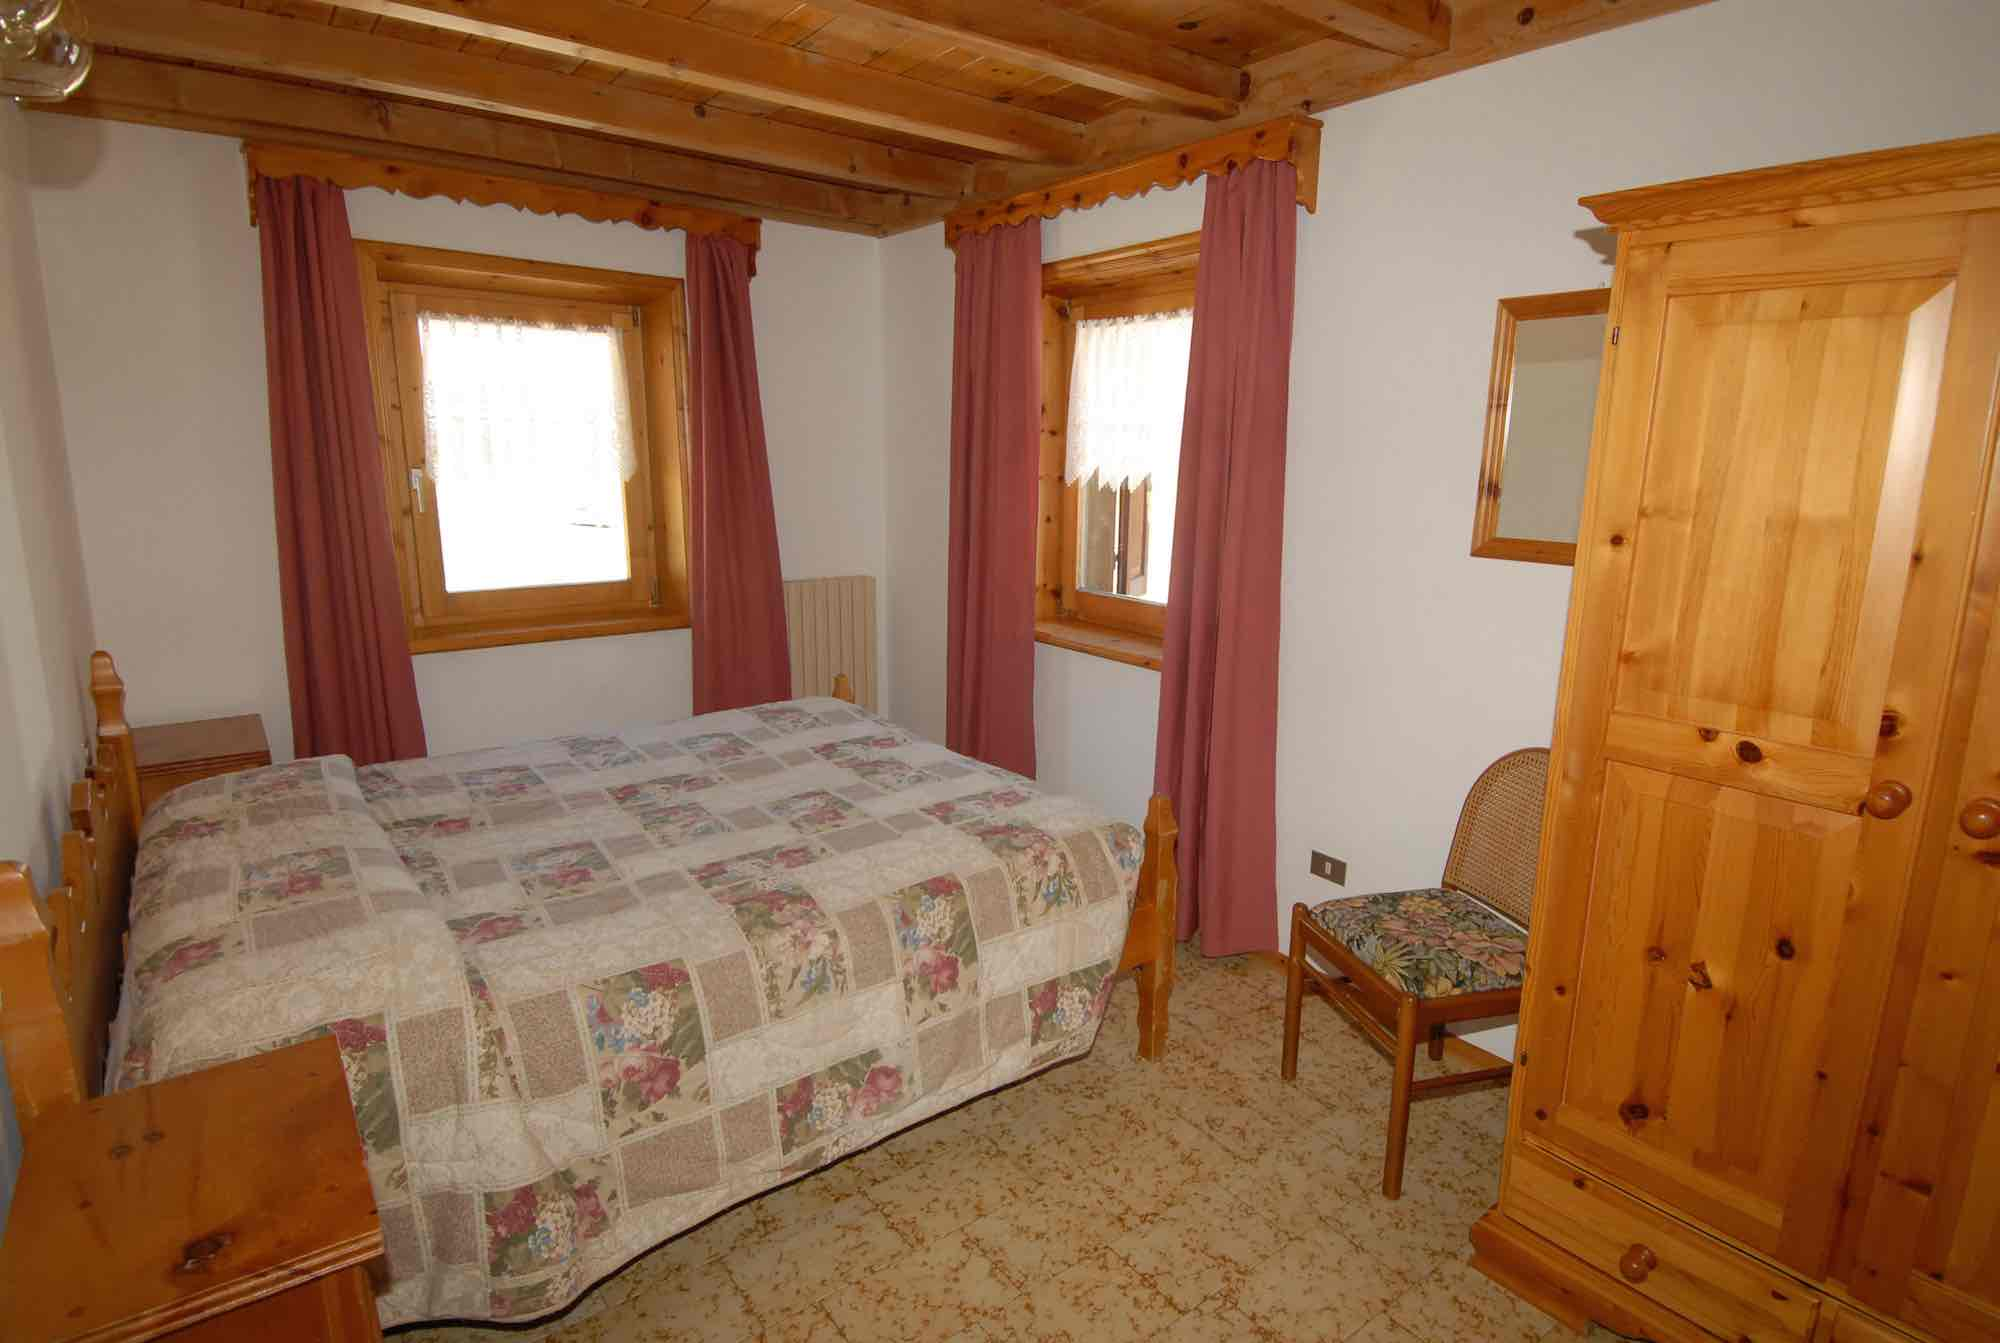 Baita Guana - Via Borch N.800, Livigno 23041 - Apartment - Primo Piano X6 4